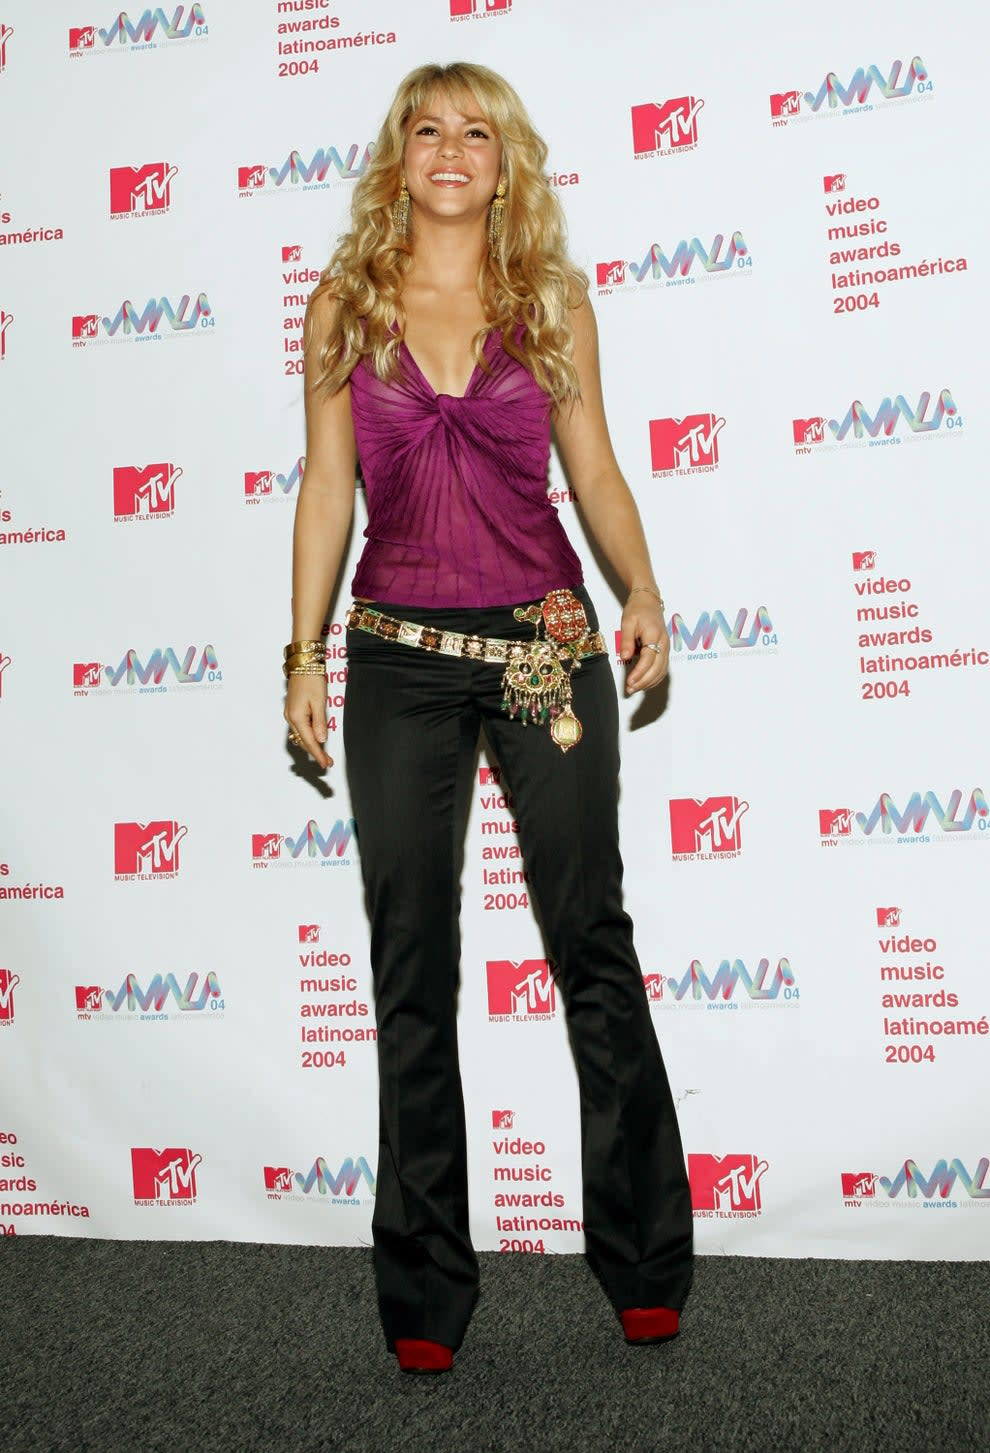 Shakira wears a halter top with jeans and a big jewelled and embellished belt hanging off of her right hip.